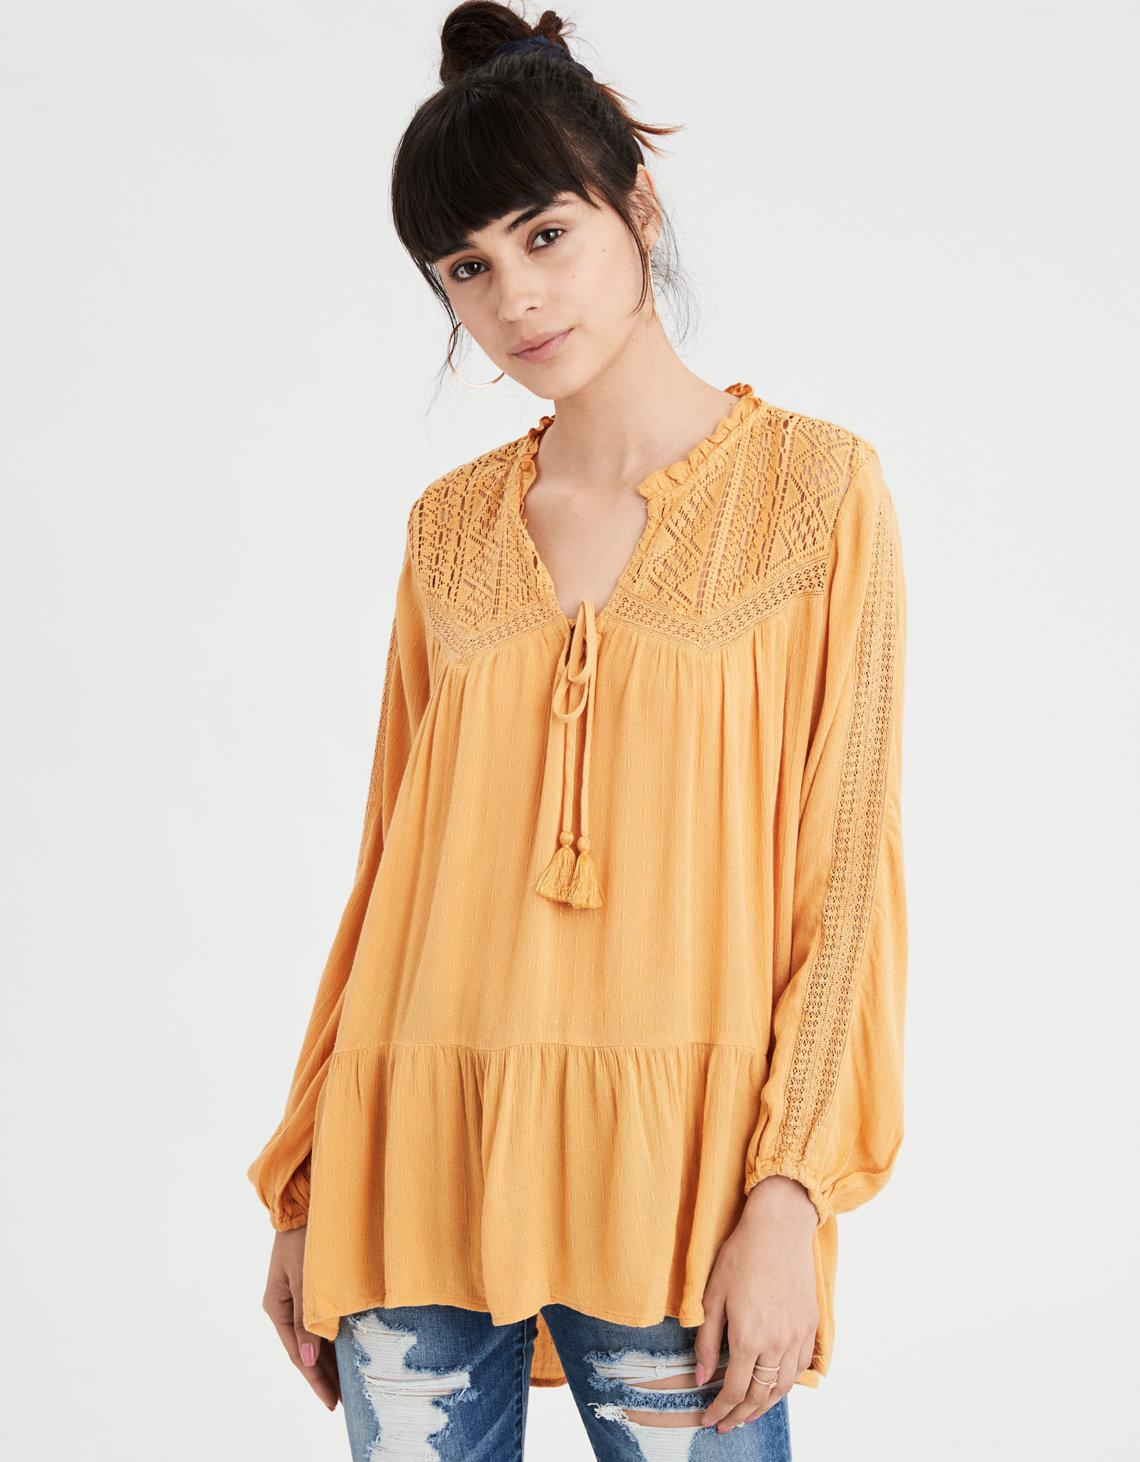 35084f9e49ffb Lyst - American Eagle Ae Lace Inset Long Sleeve Tunic Blouse in Yellow